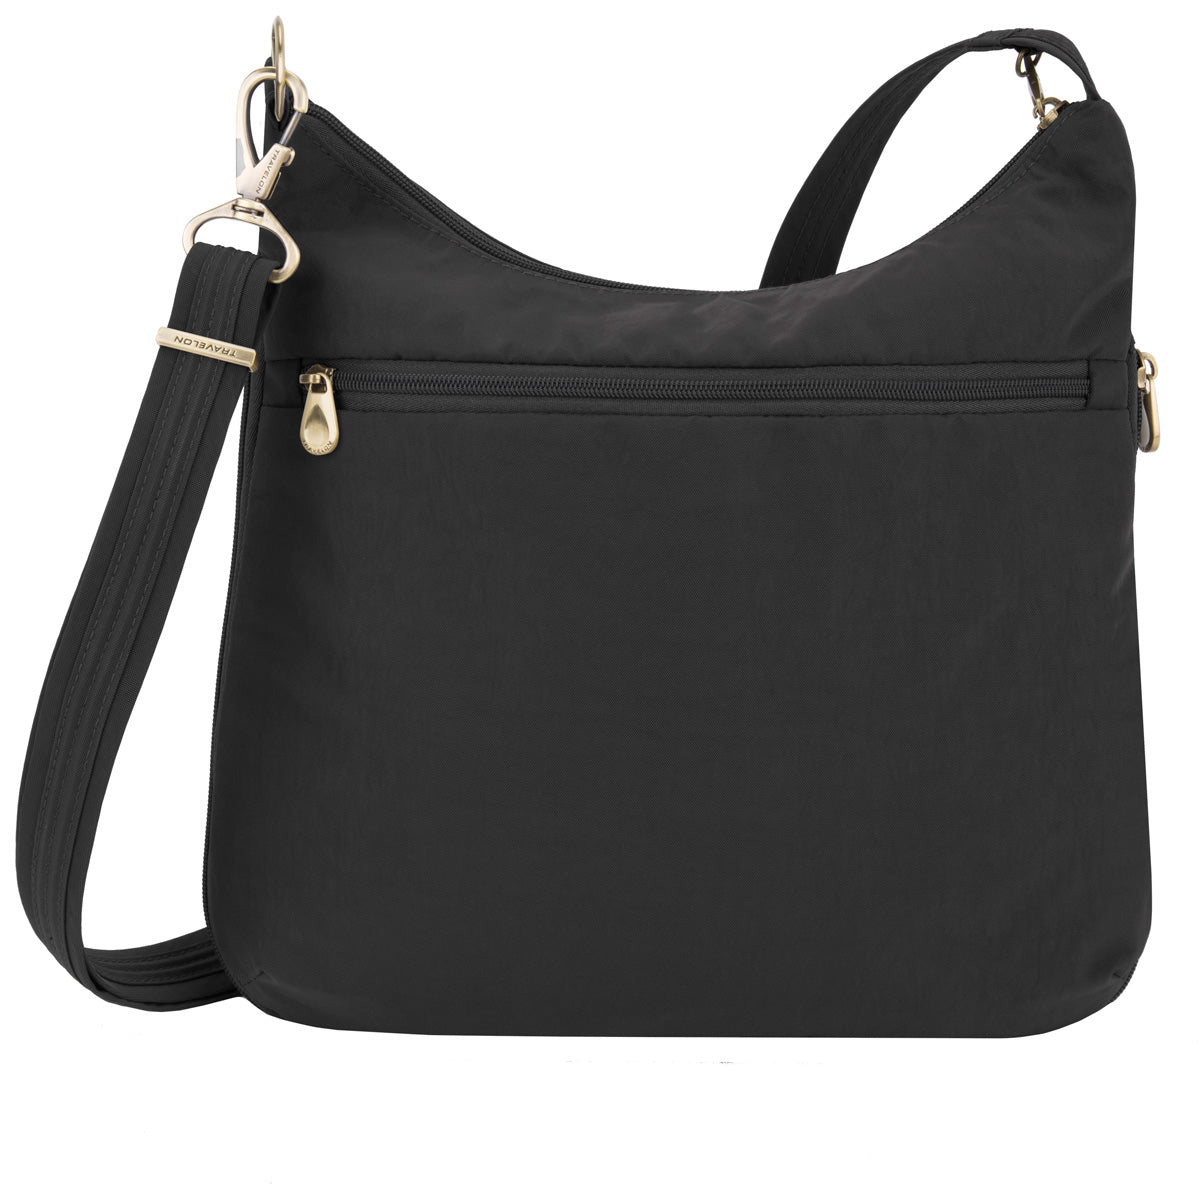 d6a0c7fe48 ... Travelon Anti-Theft Signature Quilted Expansion Crossbody - Lexington  Luggage ...